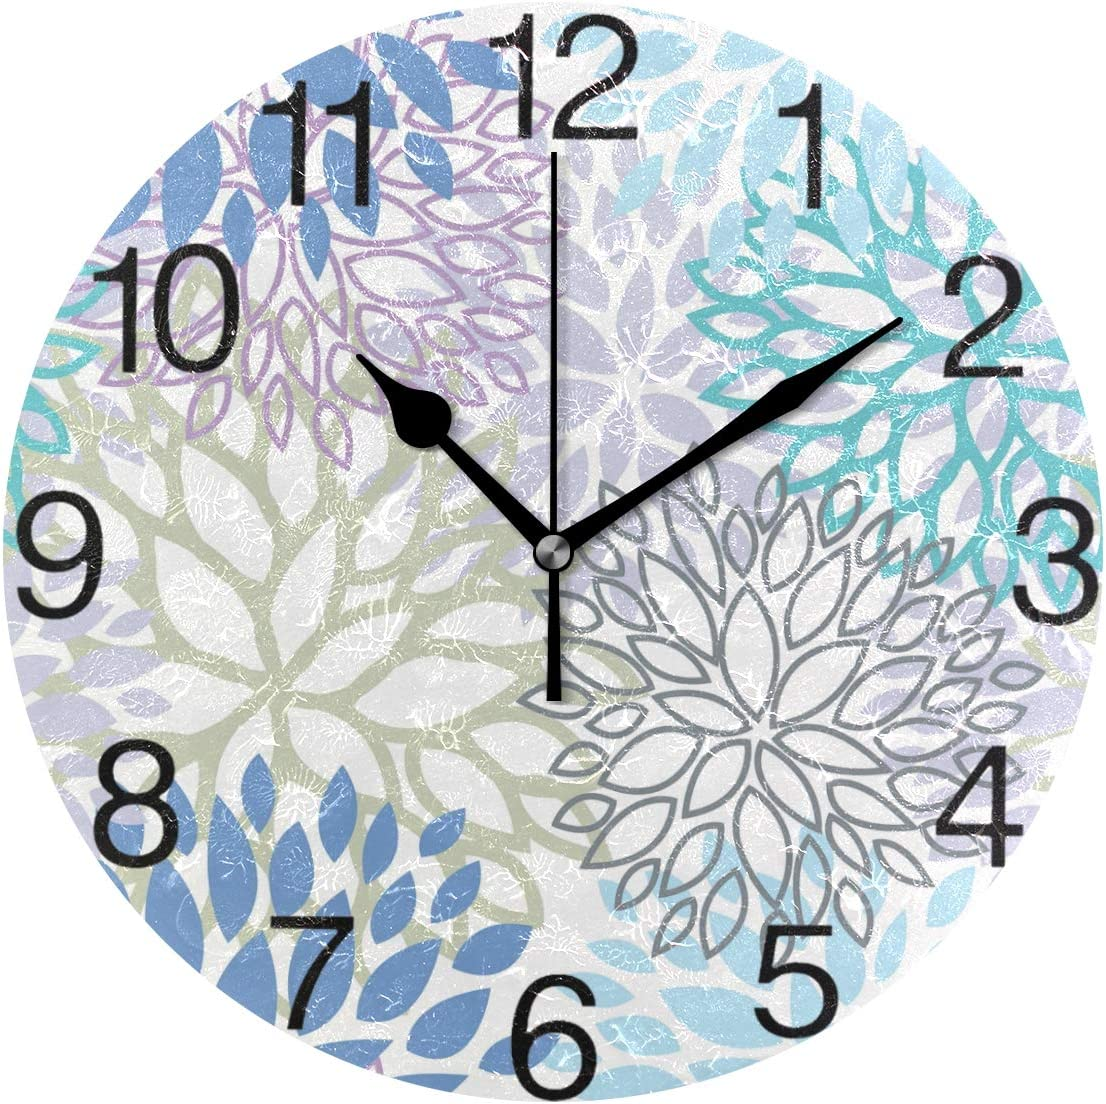 White Dahlia Round Wall Clock, Silent Non Ticking Oil Painting Decorative for Home Office School Clock Art, Blue Grey And Purple